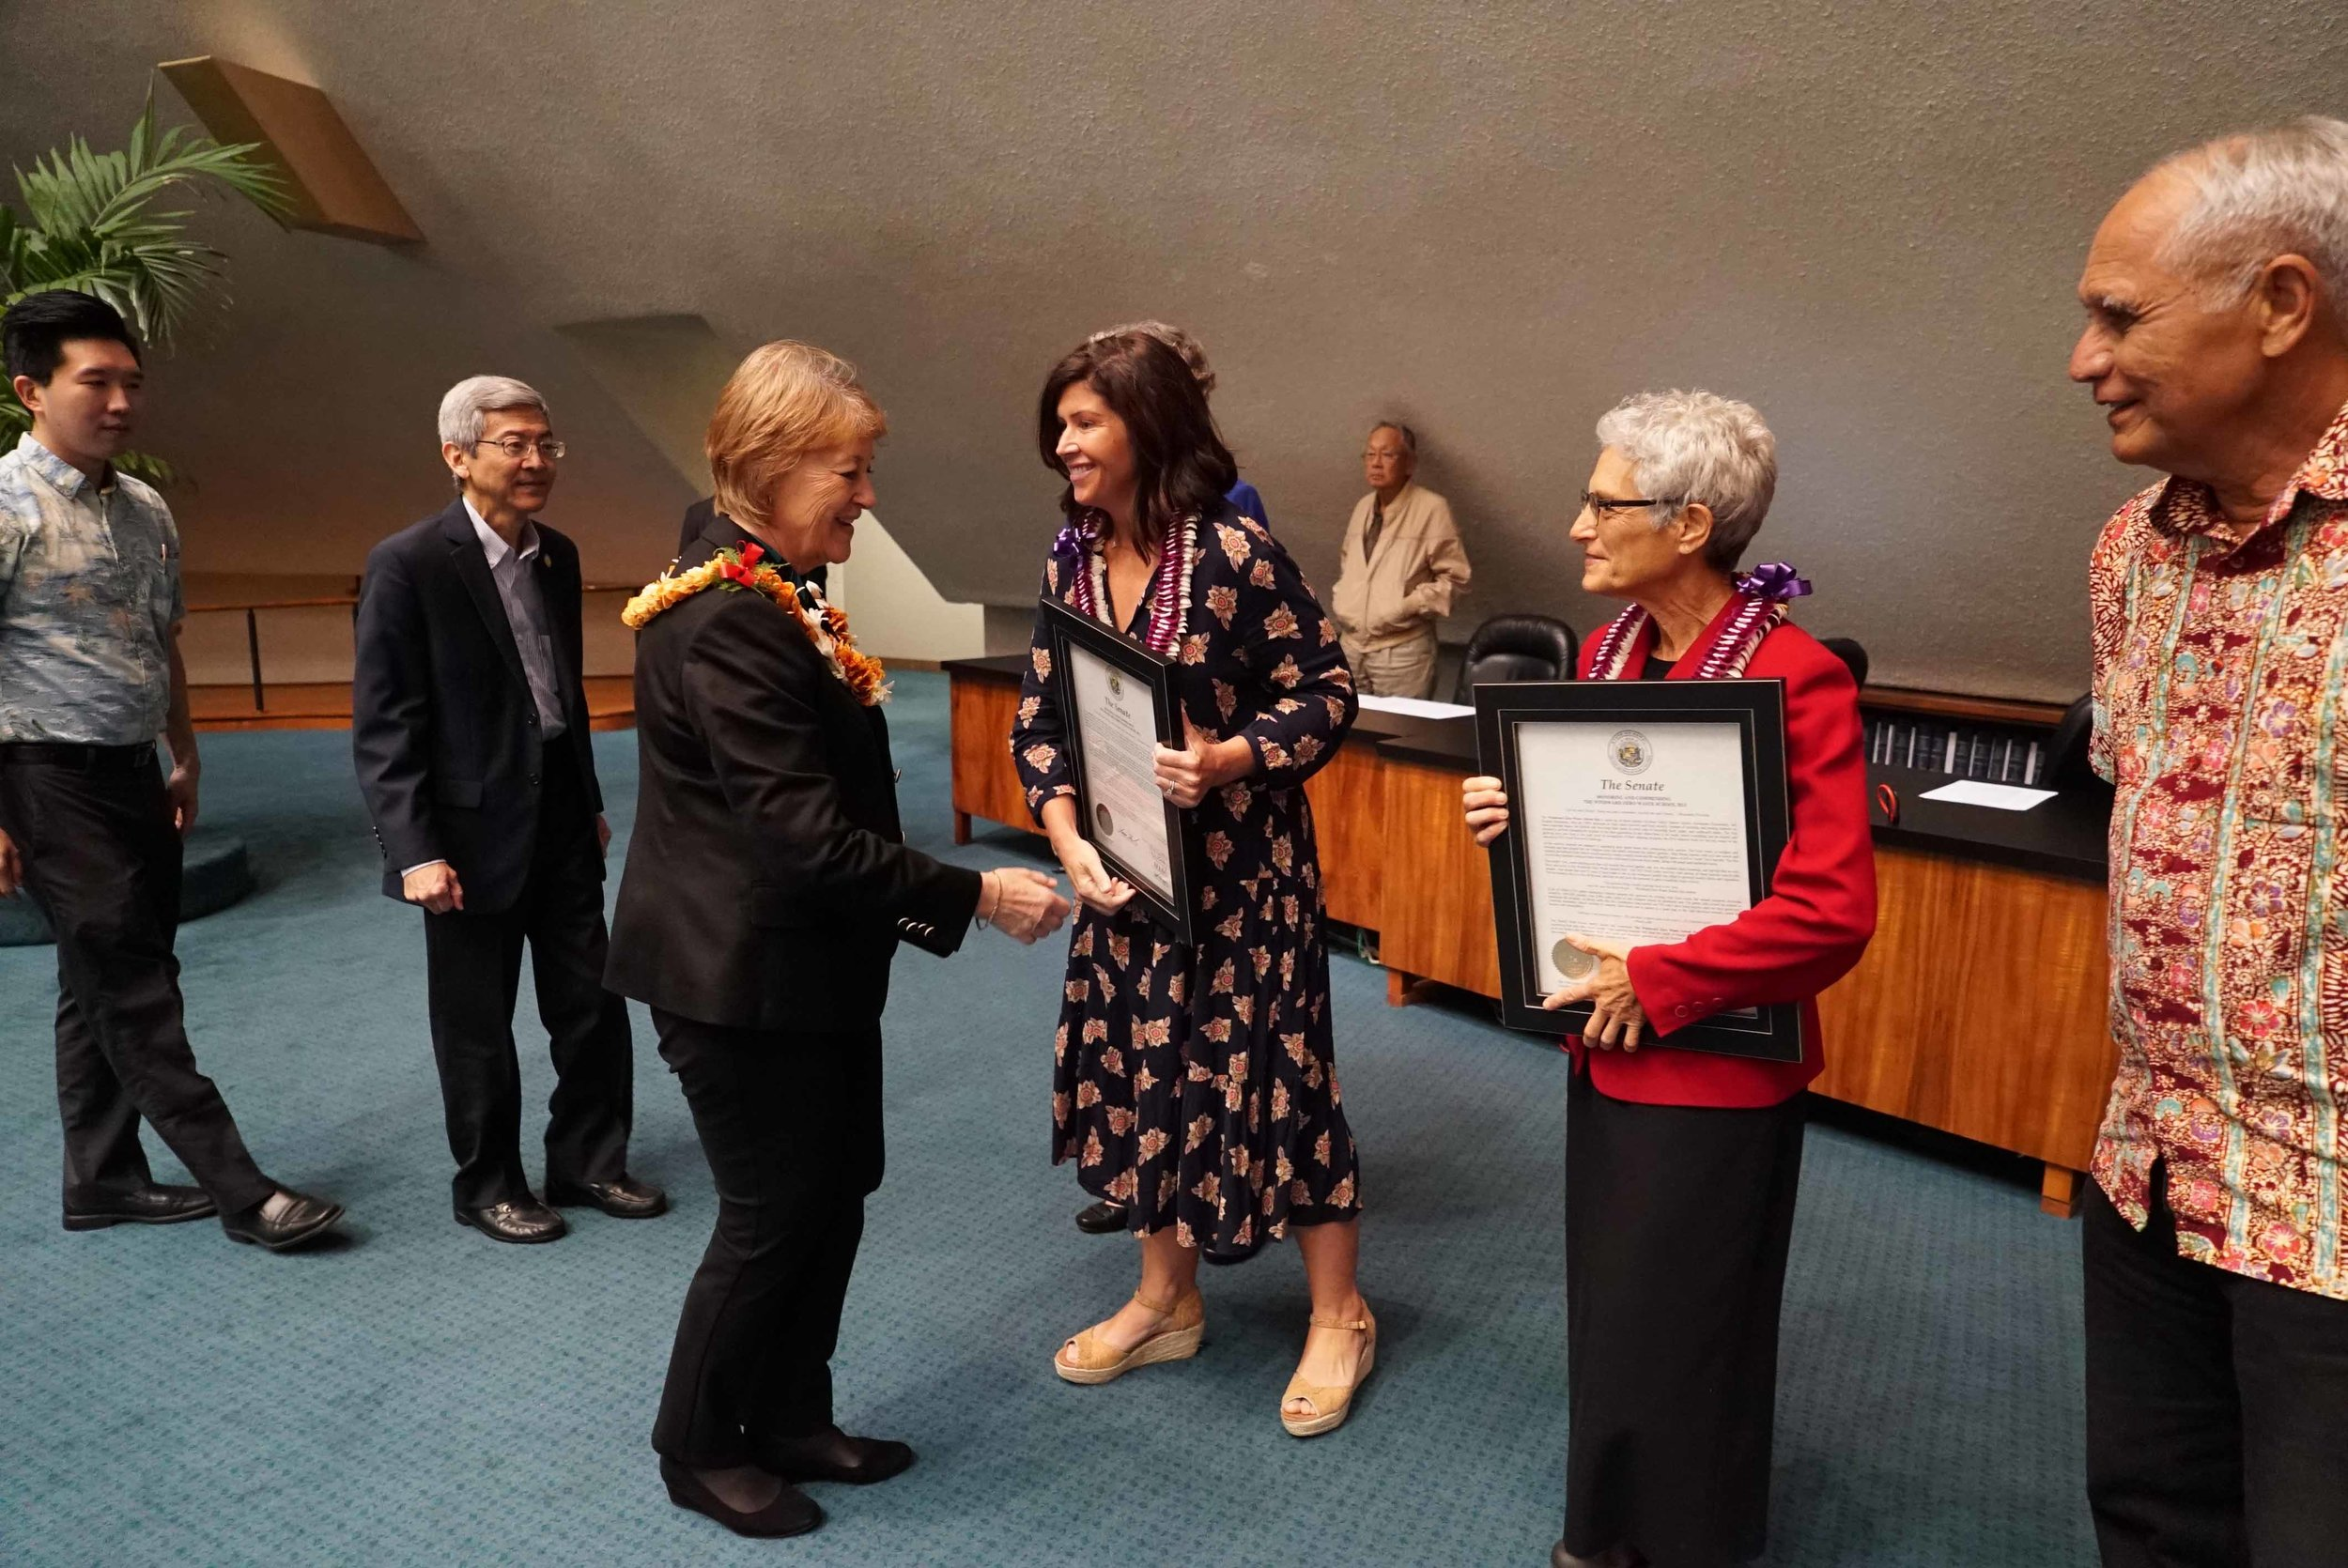 The Windward Zero Waste Hui was recognized by the State Senate for their work in food waste recovery and food security.  (March 9, 2018)